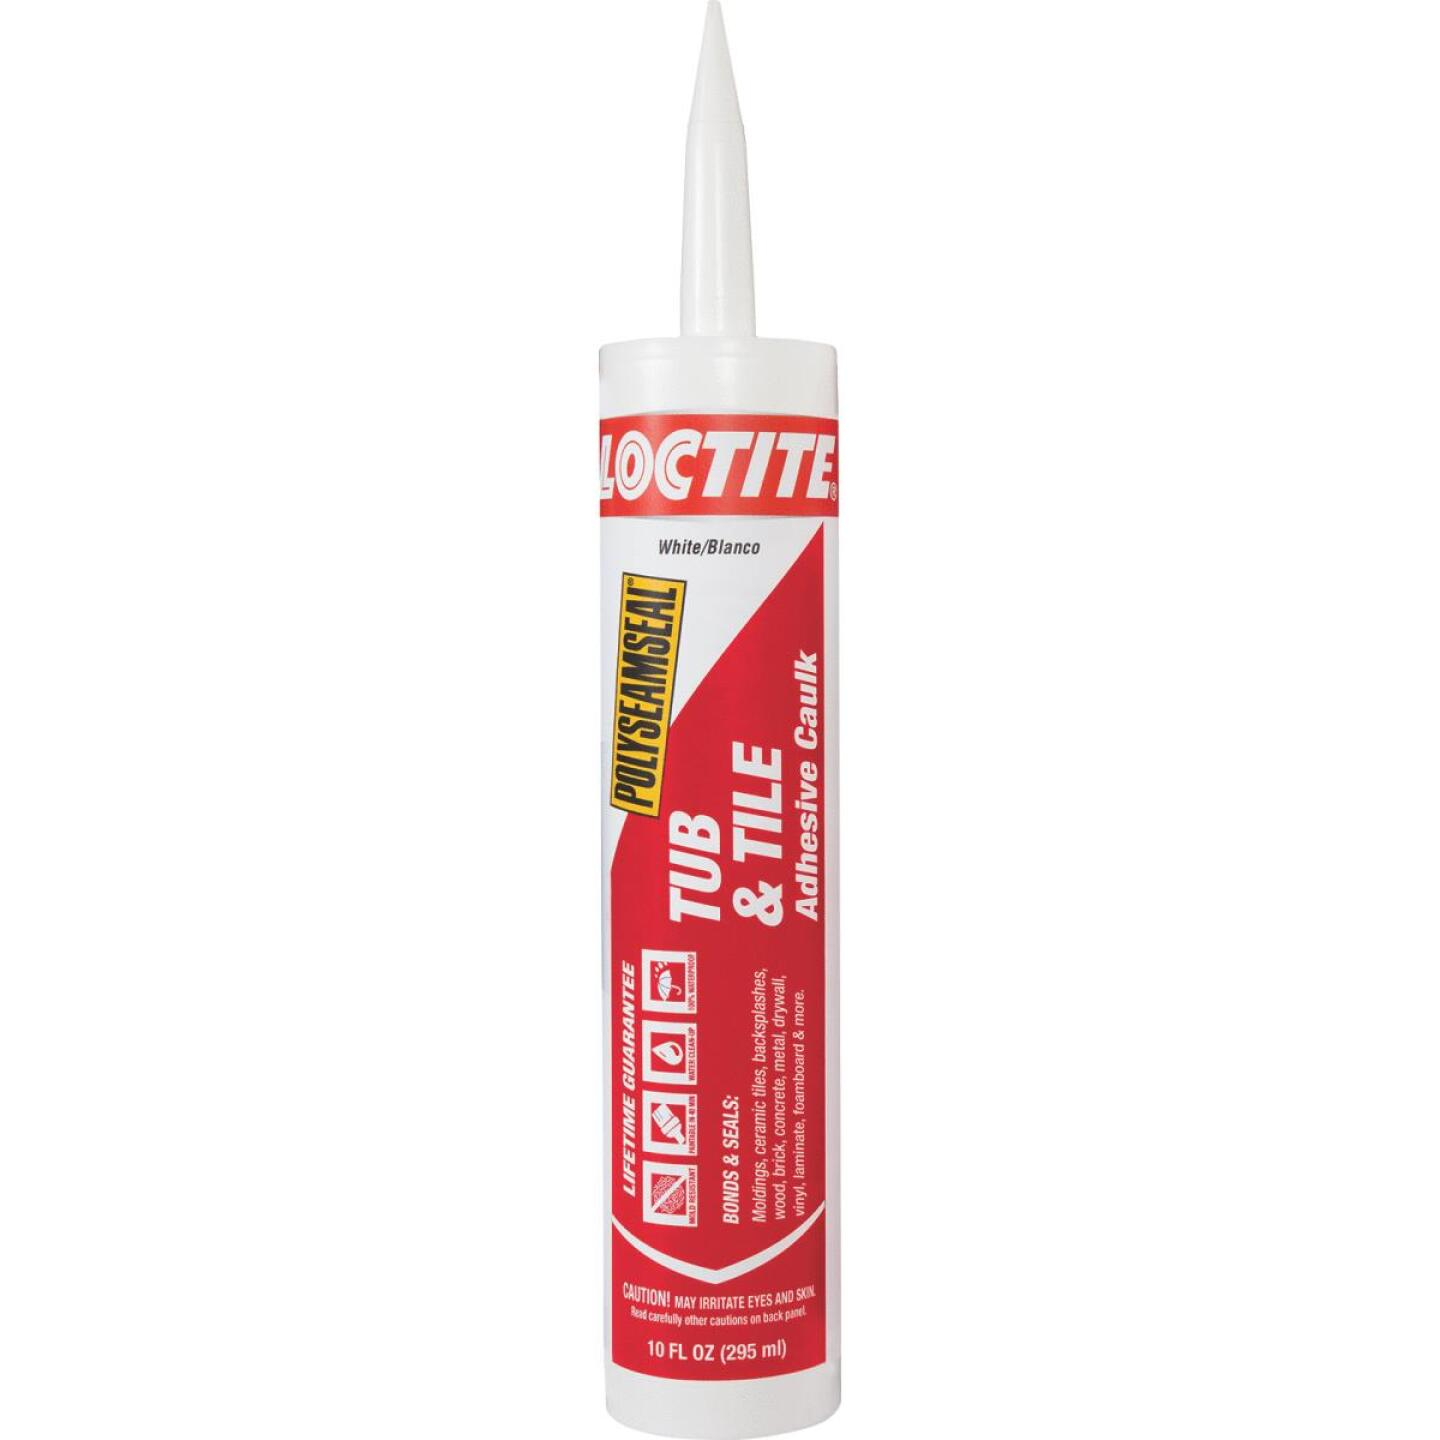 LOCTITE POLYSEAMSEAL 10 Oz. White Kitchen & Bath Caulk Image 1